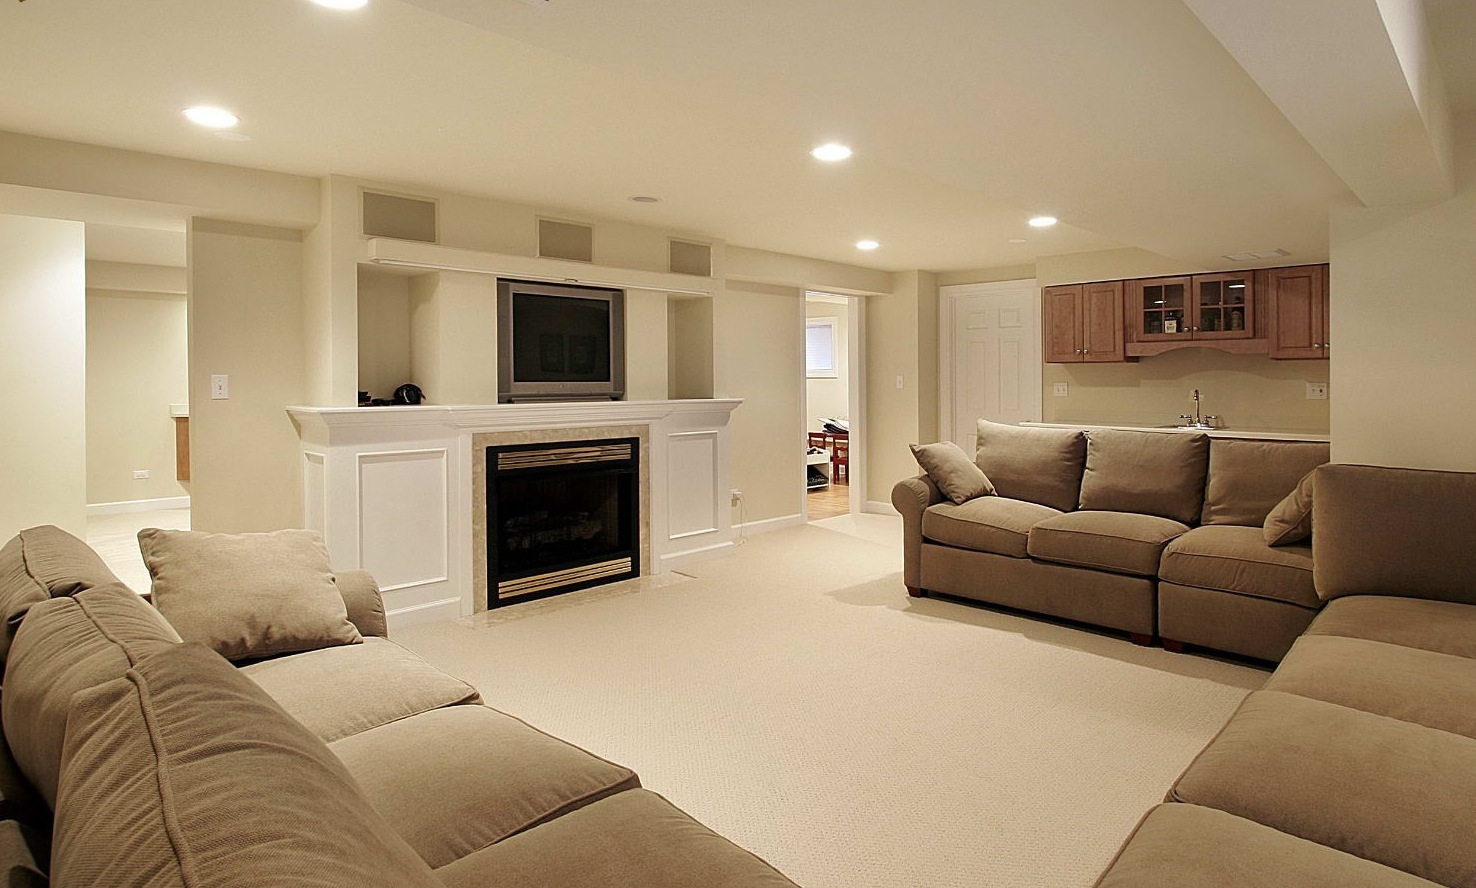 Basement Remodeling Ideas Extraordinary 30 Basement Remodeling Ideas & Inspiration Decorating Design